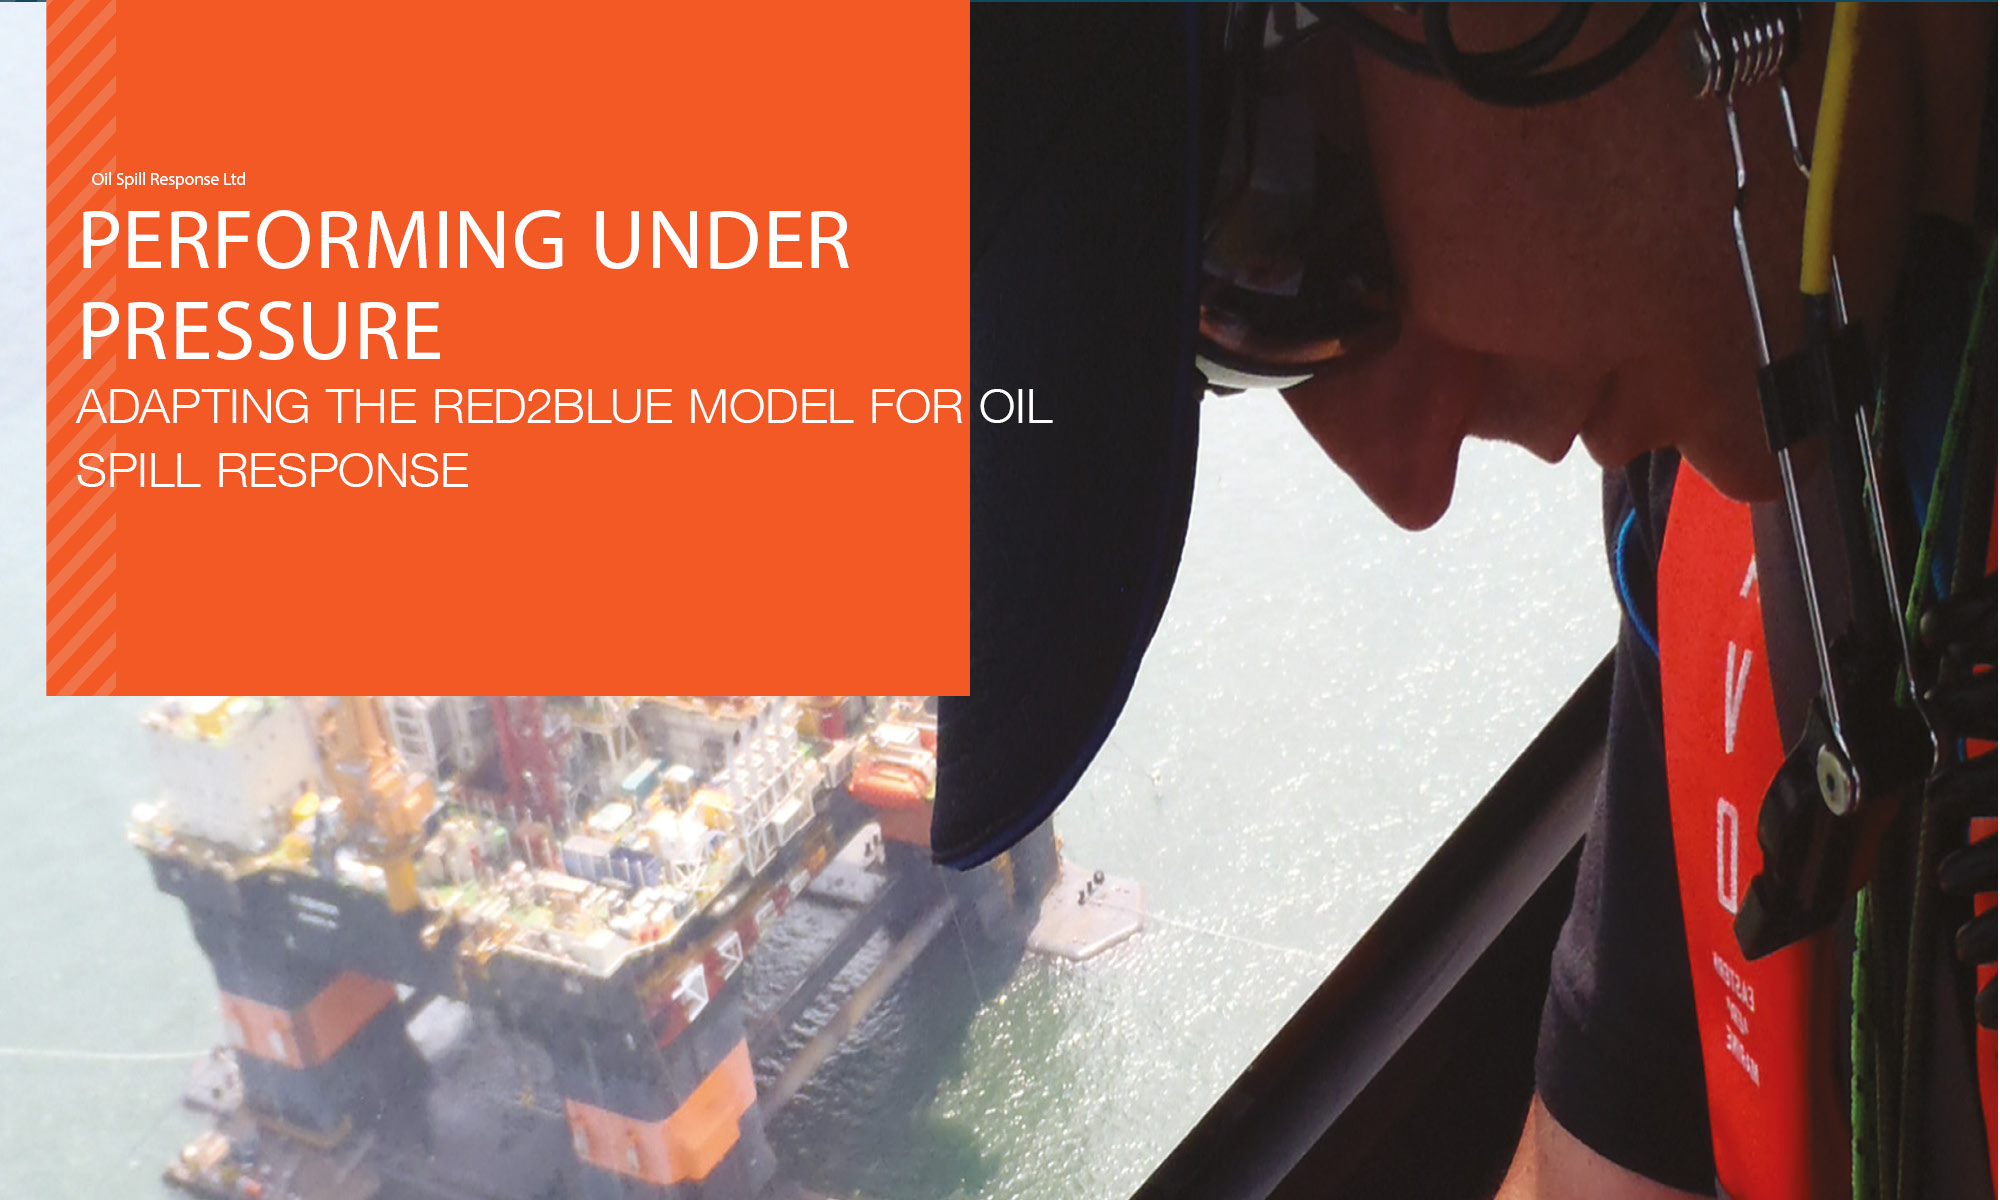 Recorded Webinar : Performing Under Pressure - Adapting the Red2Blue Model to Oil Spill Response